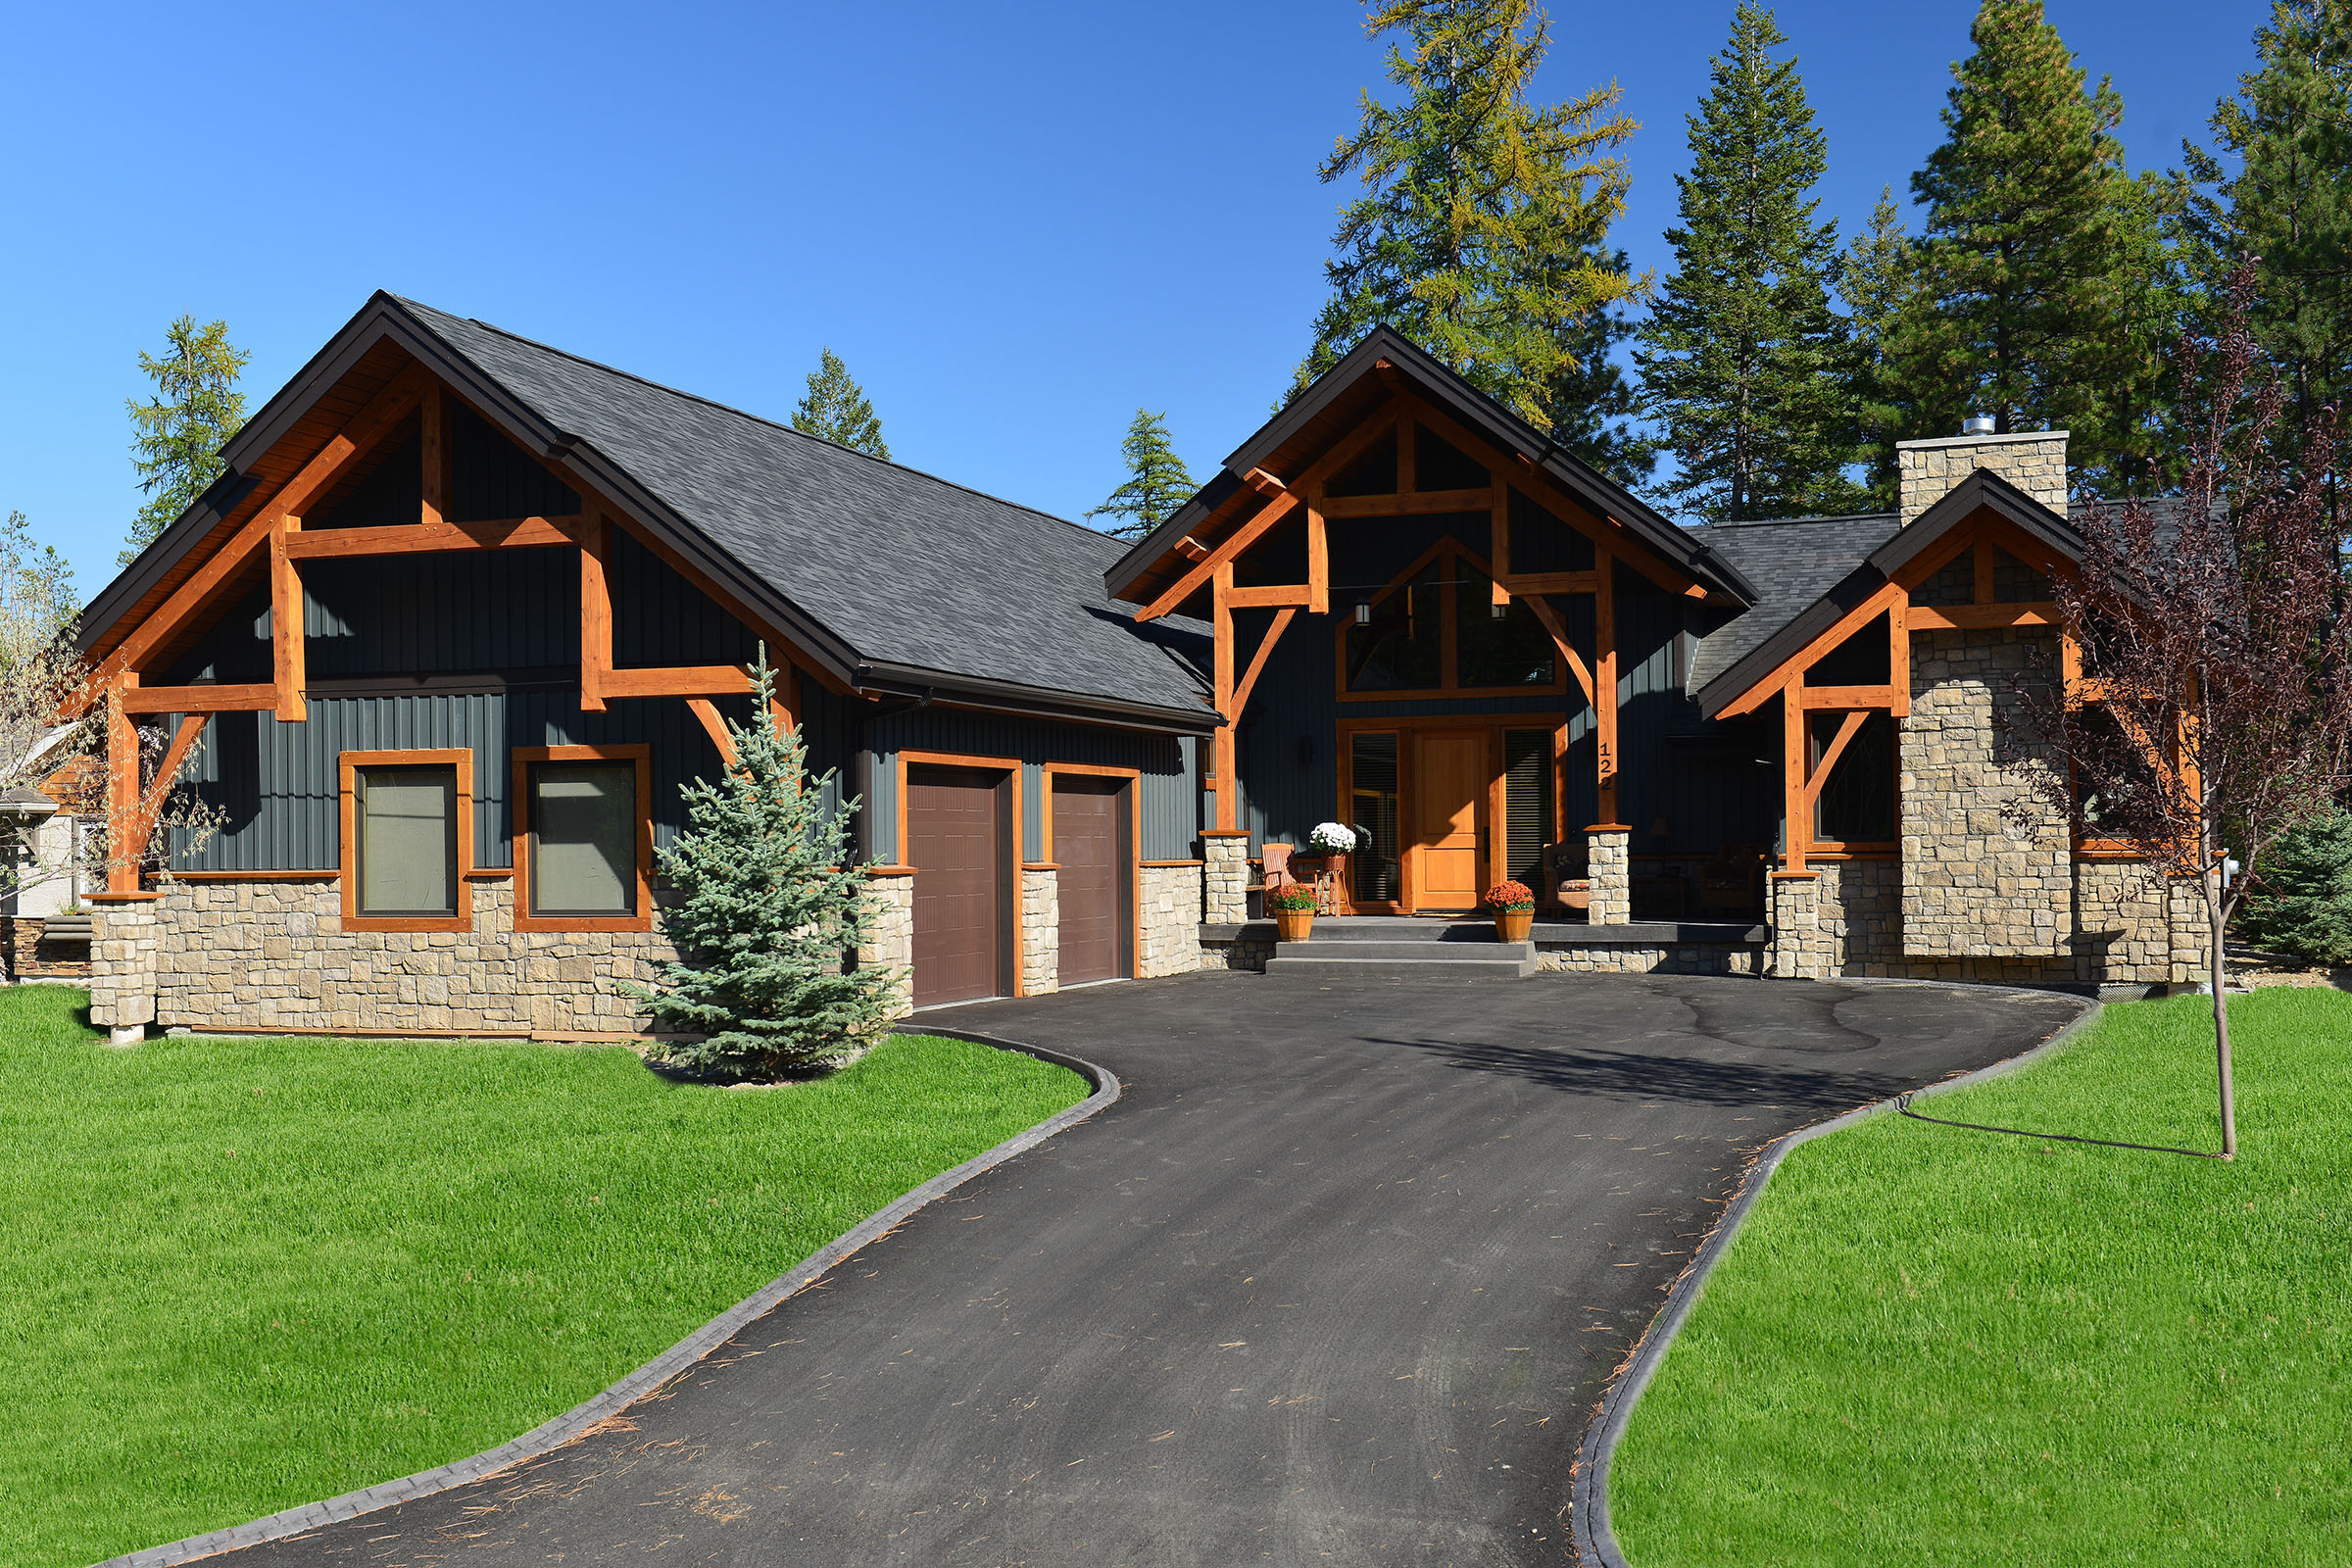 Photo Gallery: The Pine Valley | Tyee Homes